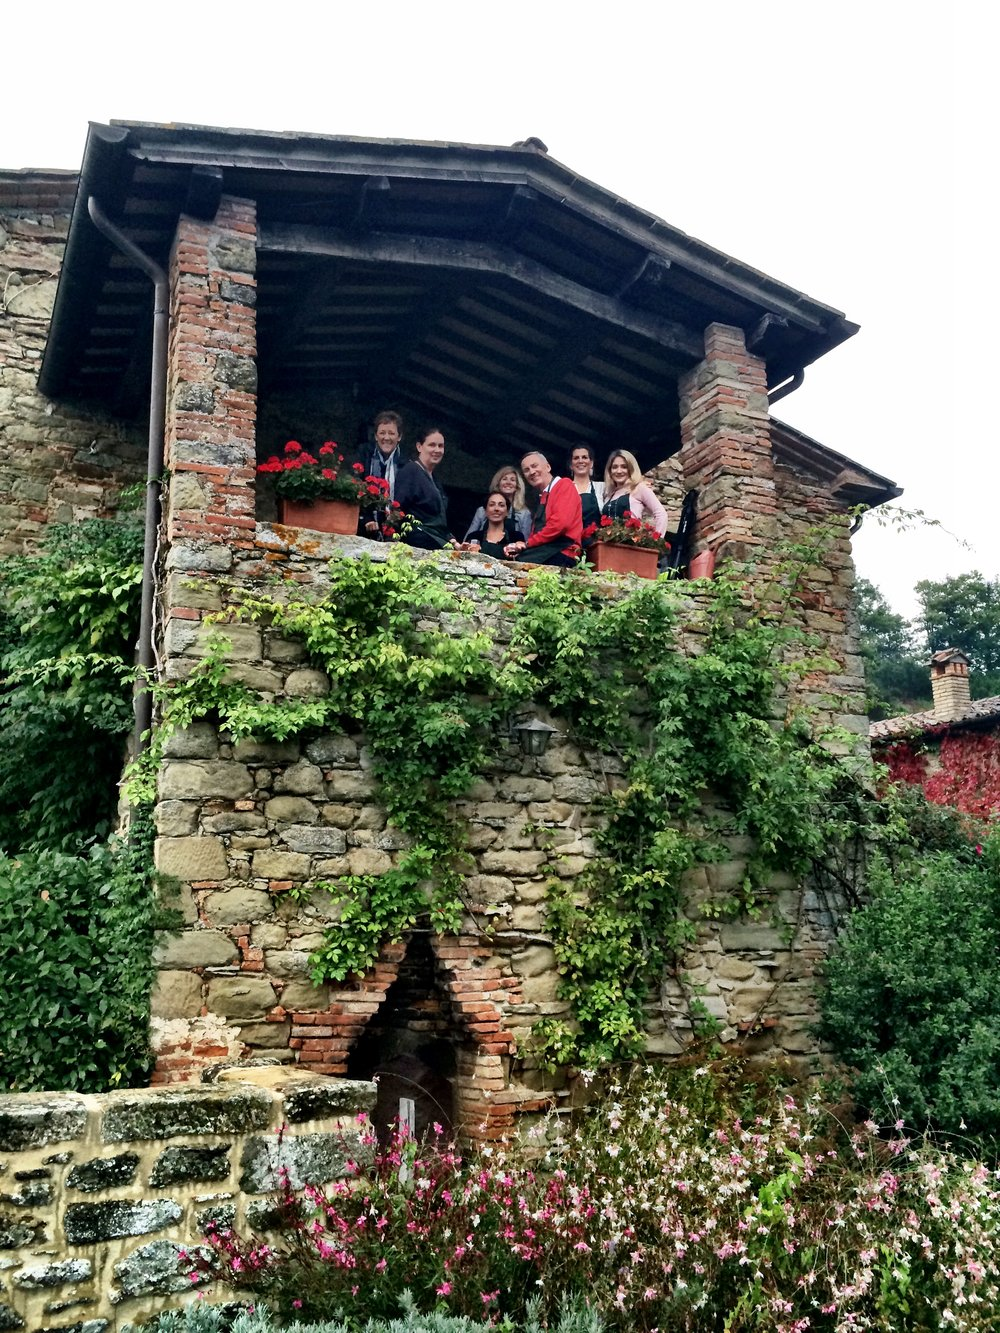 Our Candelaria Design Tour Italy 2014 Crew at the country houses in Umbria.